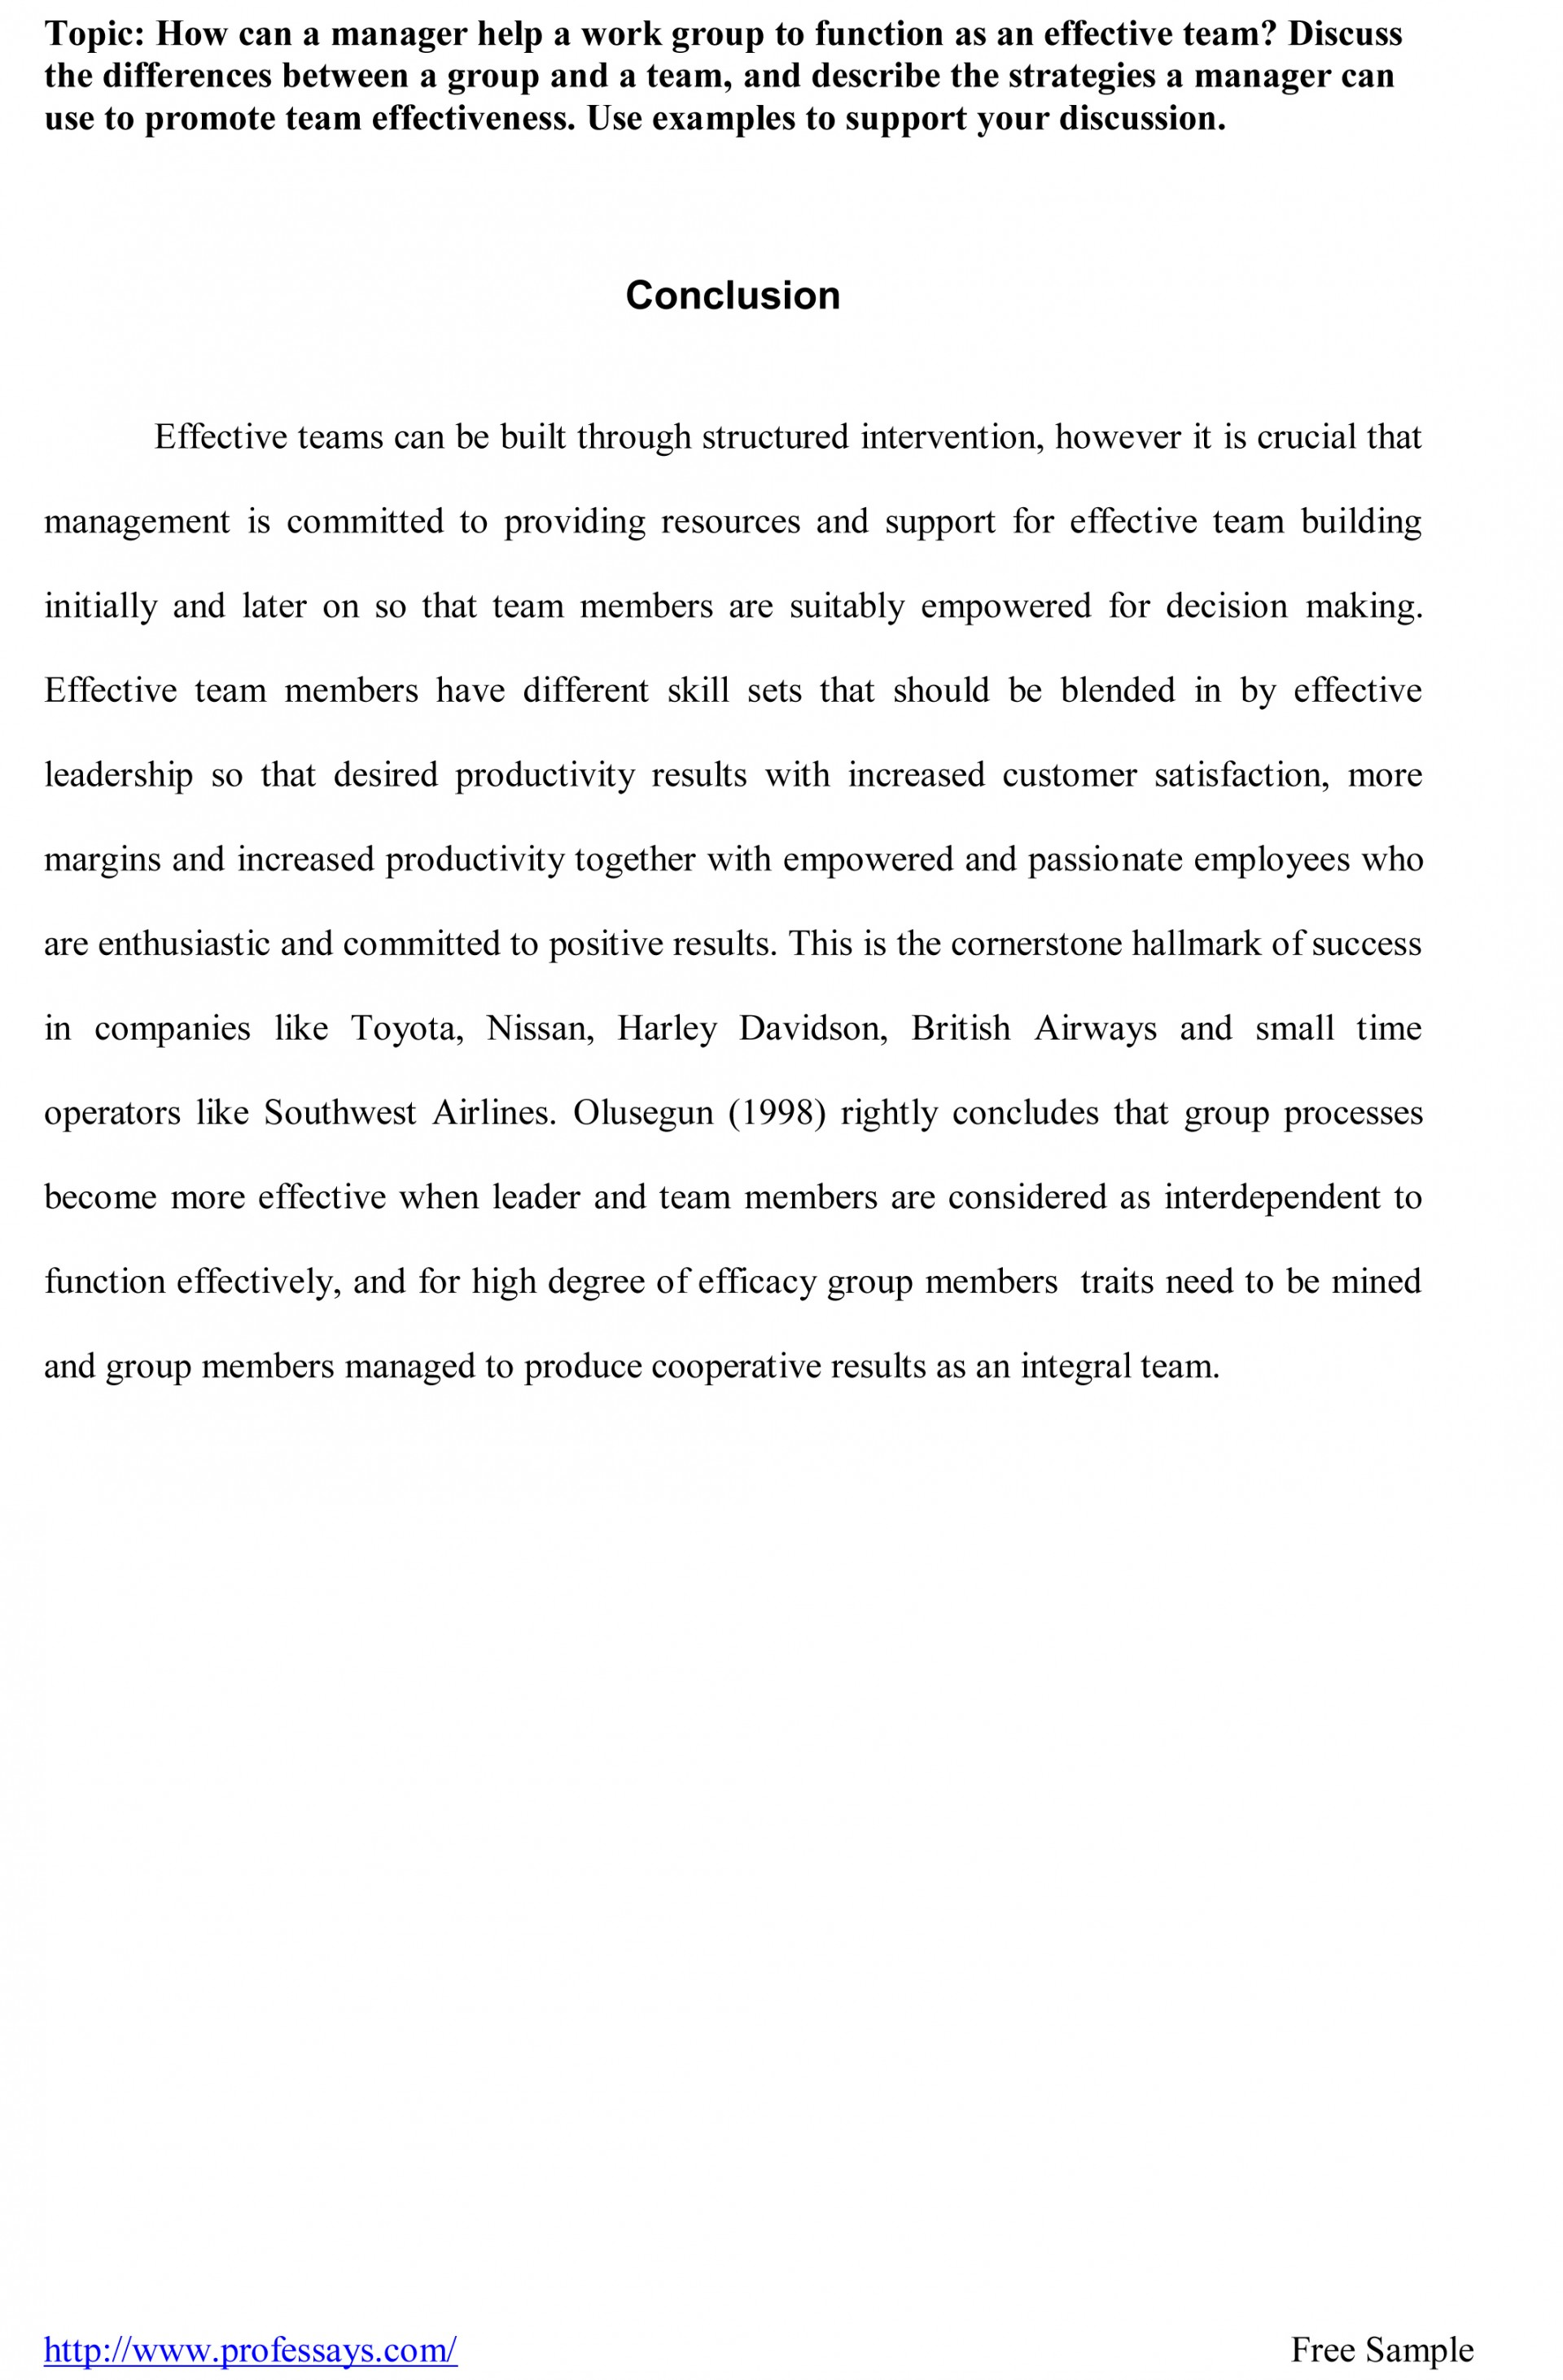 008 Research Paper Sample Of Conclusion For Dreaded Example Mla Style In Format Outline Apa 1920